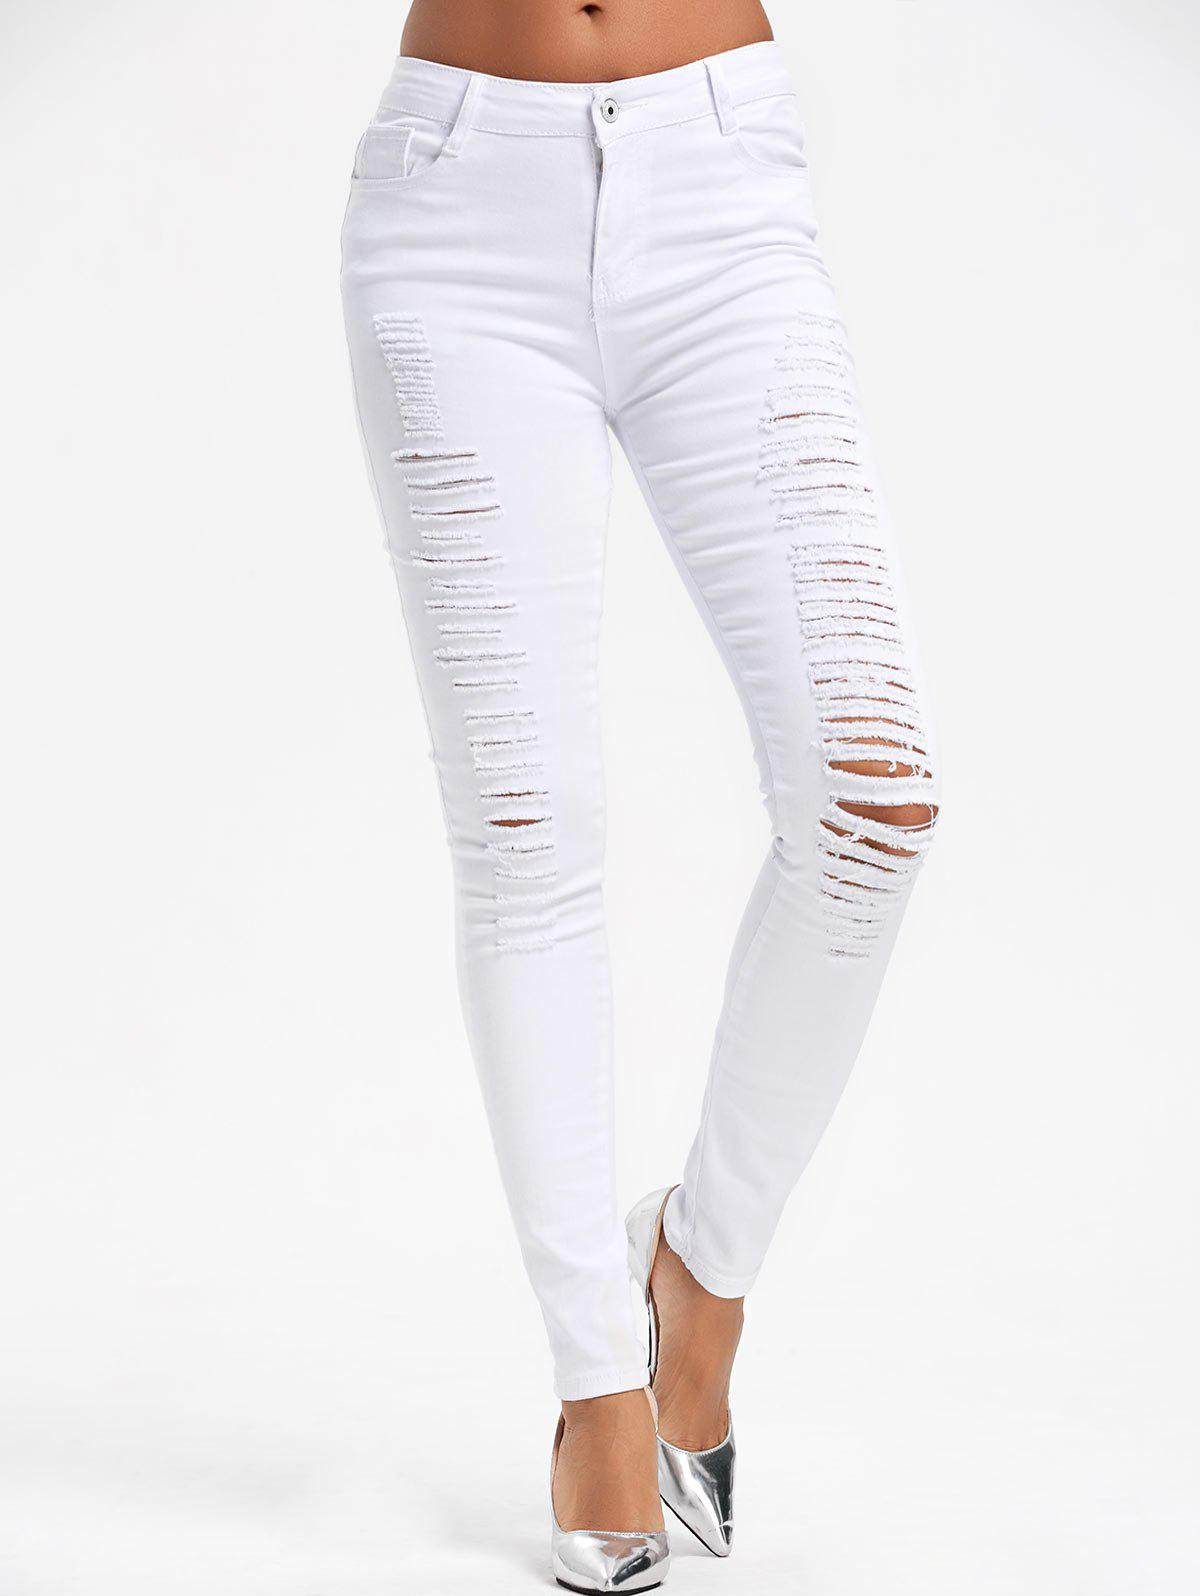 High Waist Skinny Ripped PantsWOMEN<br><br>Size: S; Color: WHITE; Style: Fashion; Length: Normal; Material: Cotton,Polyester,Spandex; Fit Type: Skinny; Waist Type: High; Closure Type: Zipper Fly; Pattern Type: Solid; Pant Style: Pencil Pants; Weight: 0.4500kg; Package Contents: 1 x Pants;